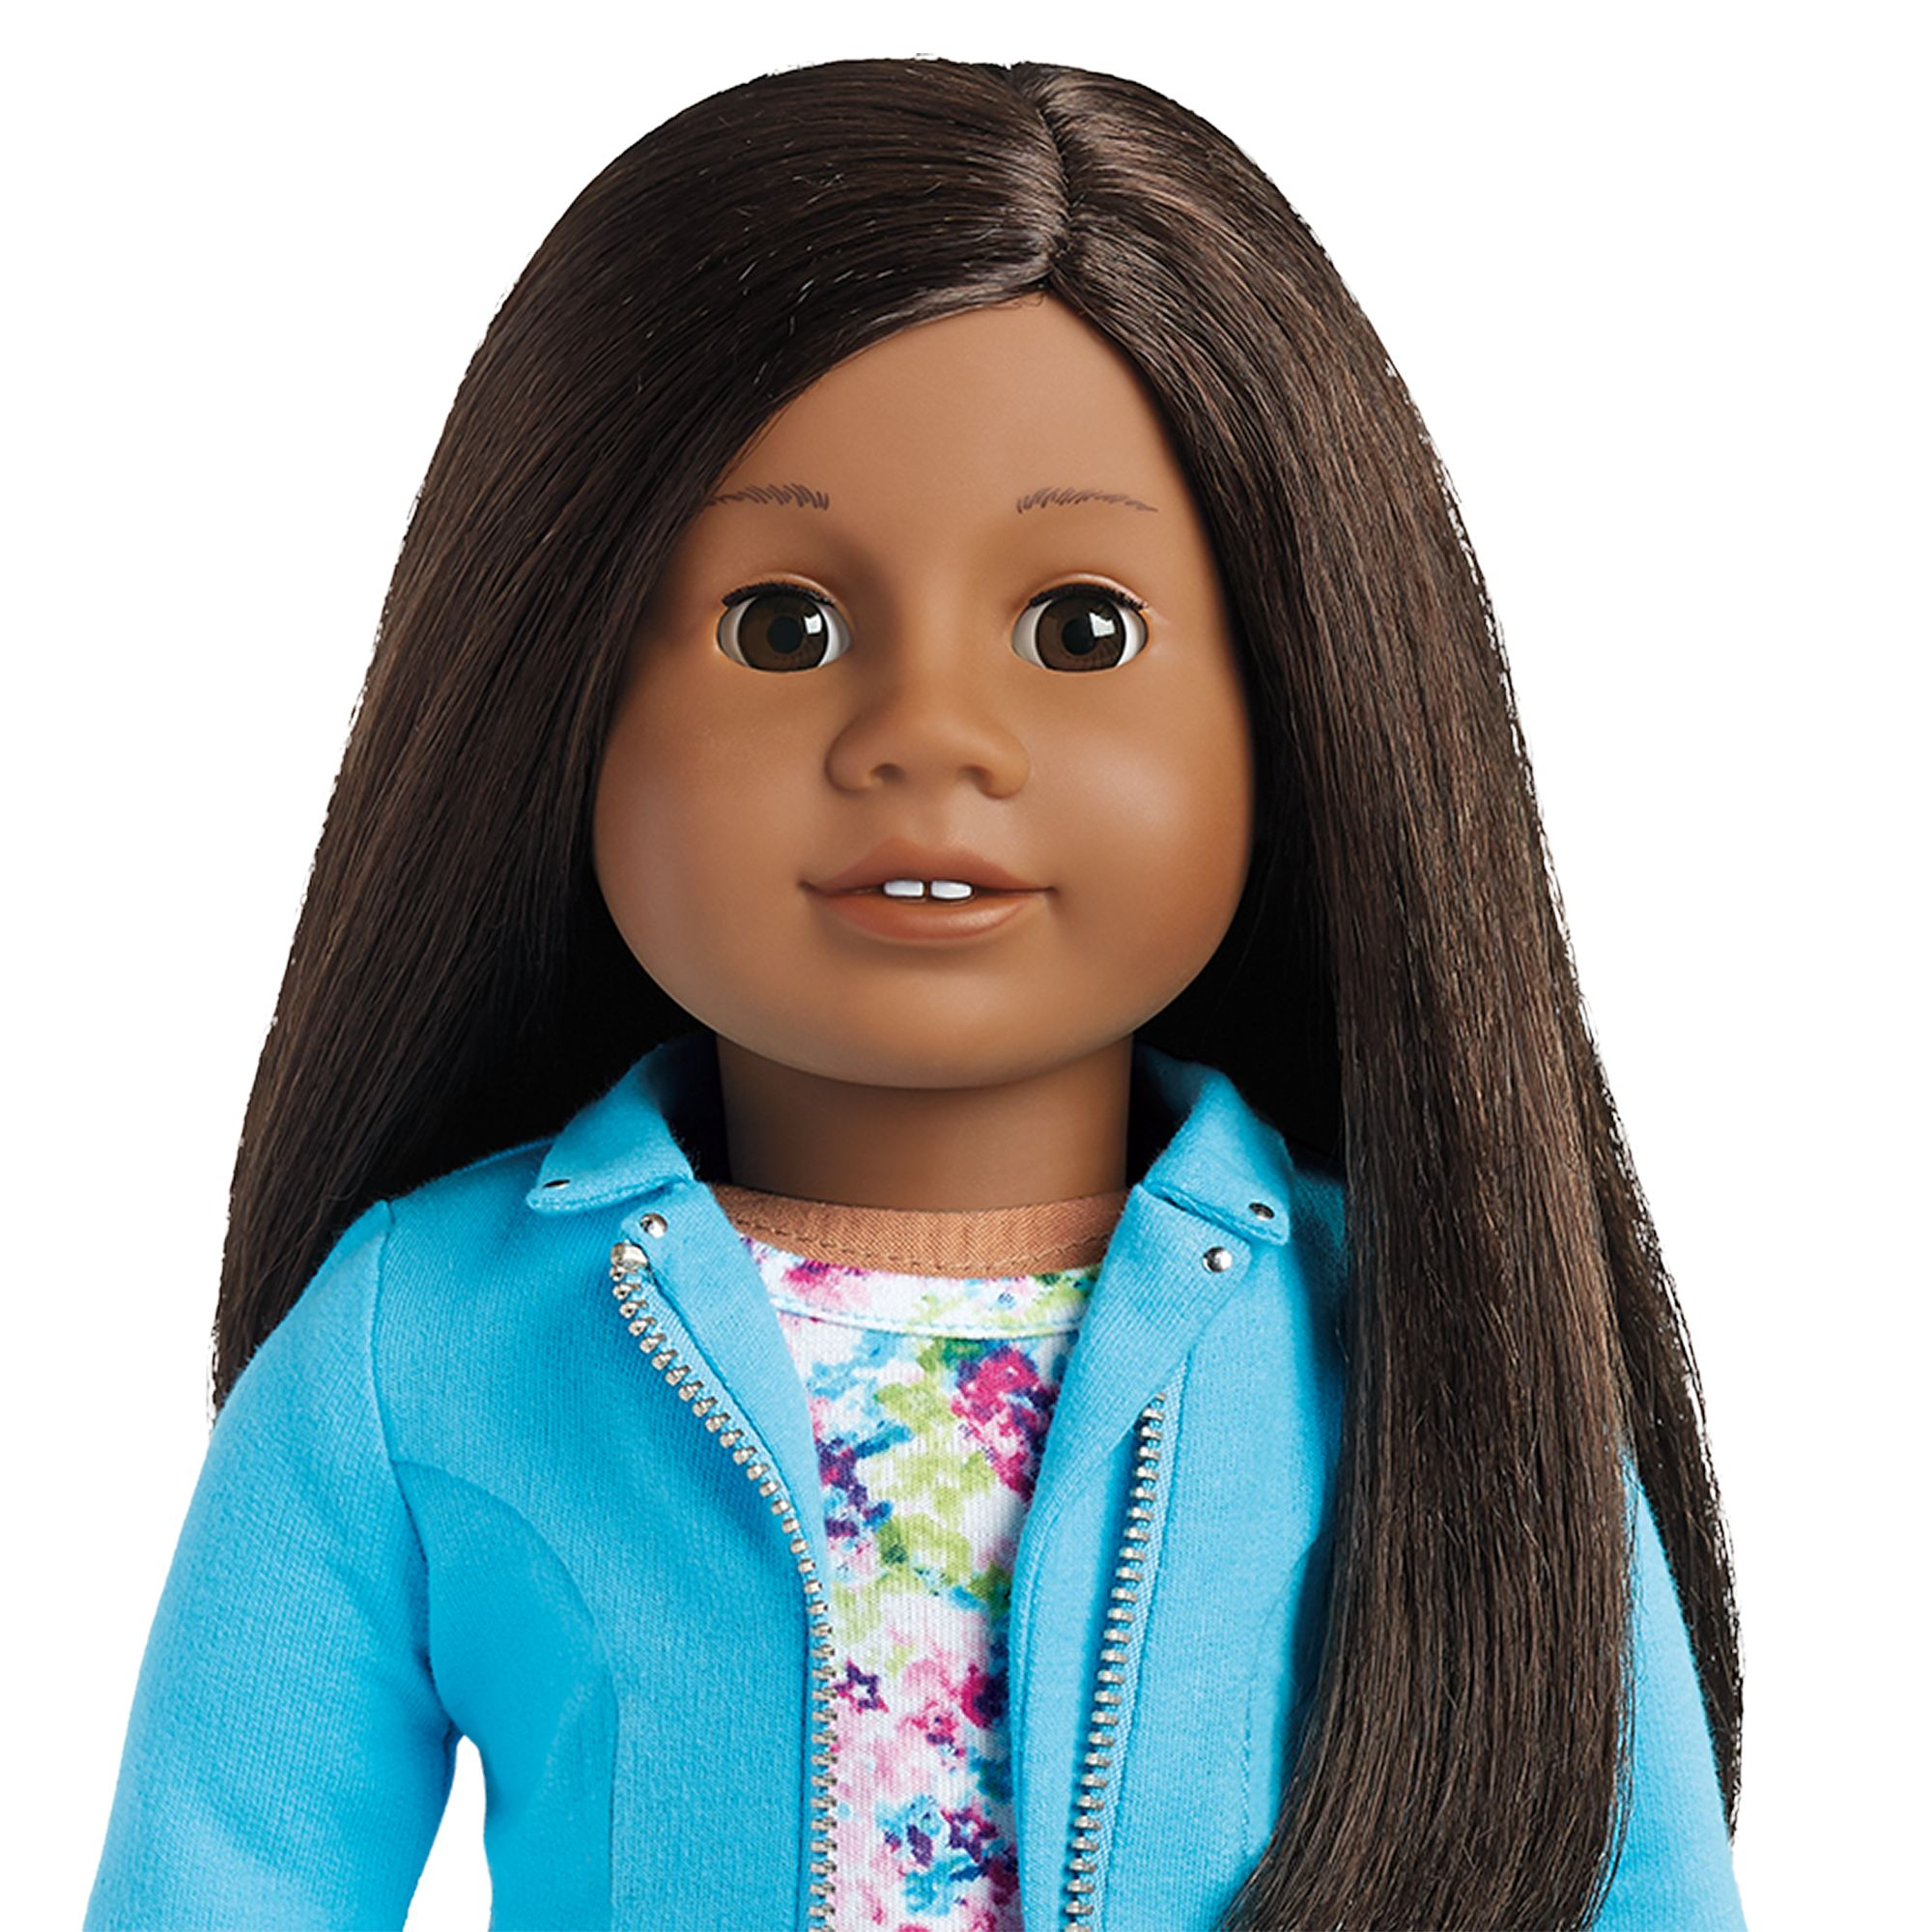 http://img2.wikia.nocookie.net/__cb20120628111108/americangirl/images/8/8c/JLY31.jpg American Girl Doll Just Like You 39